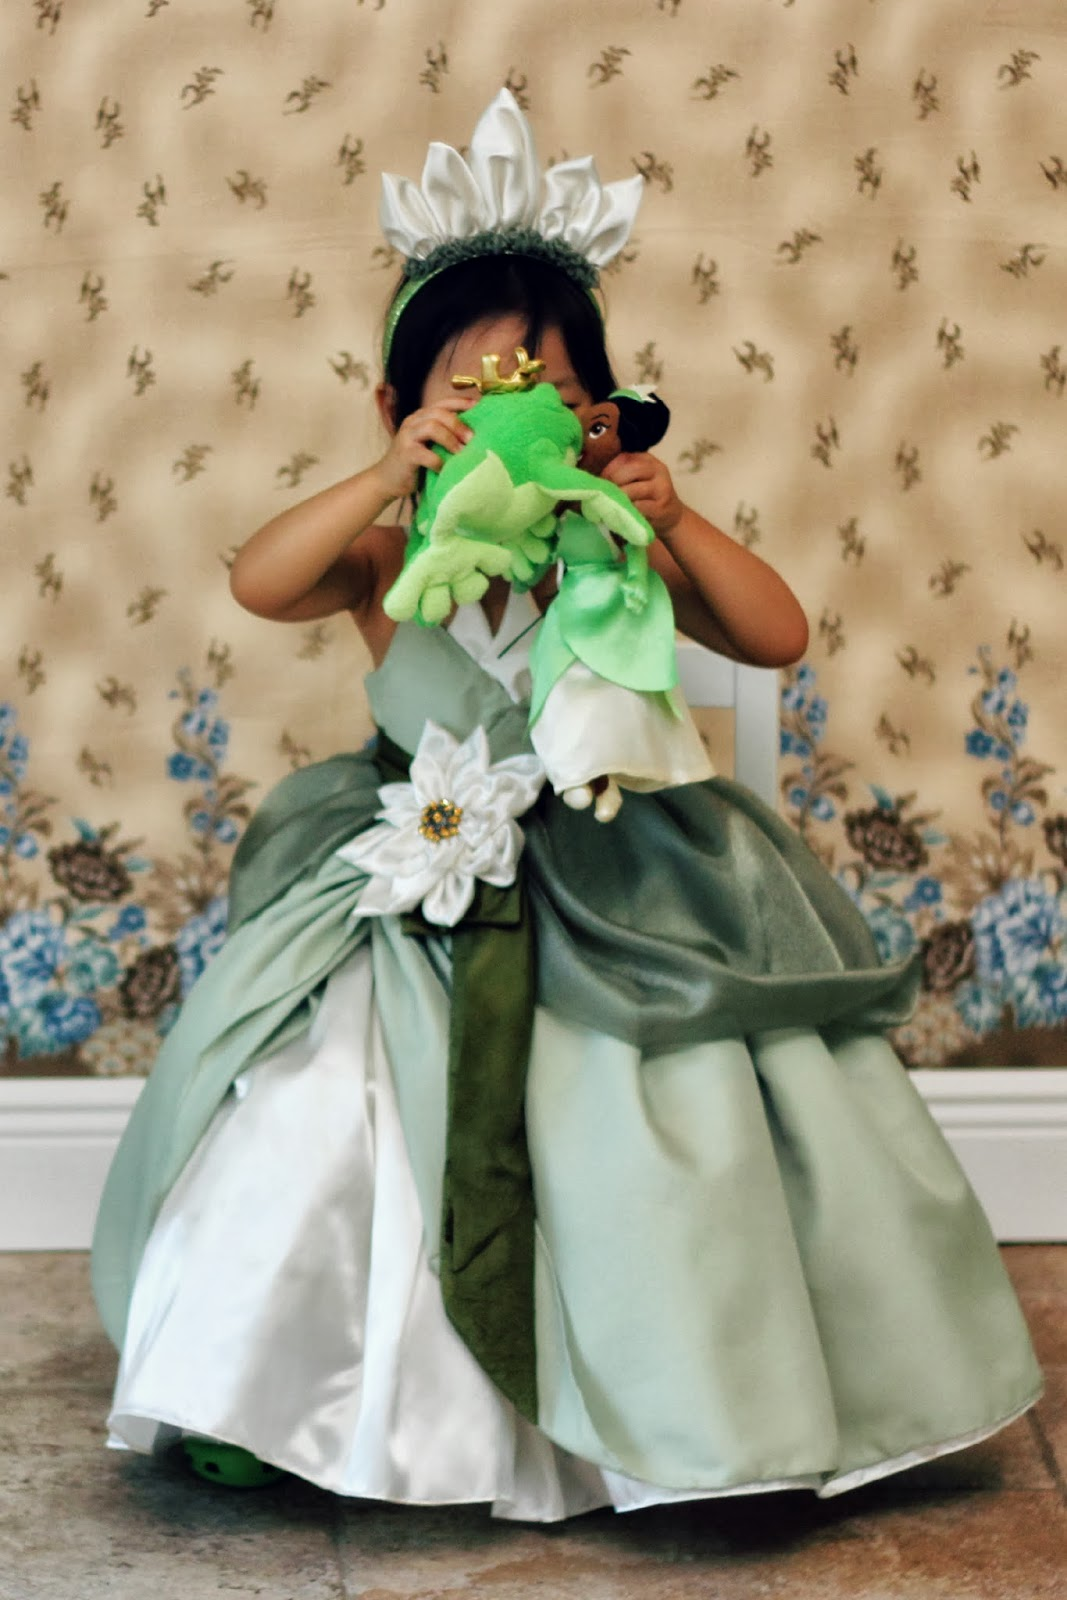 It's just a photo of Insane Pictures of Princess Tiana